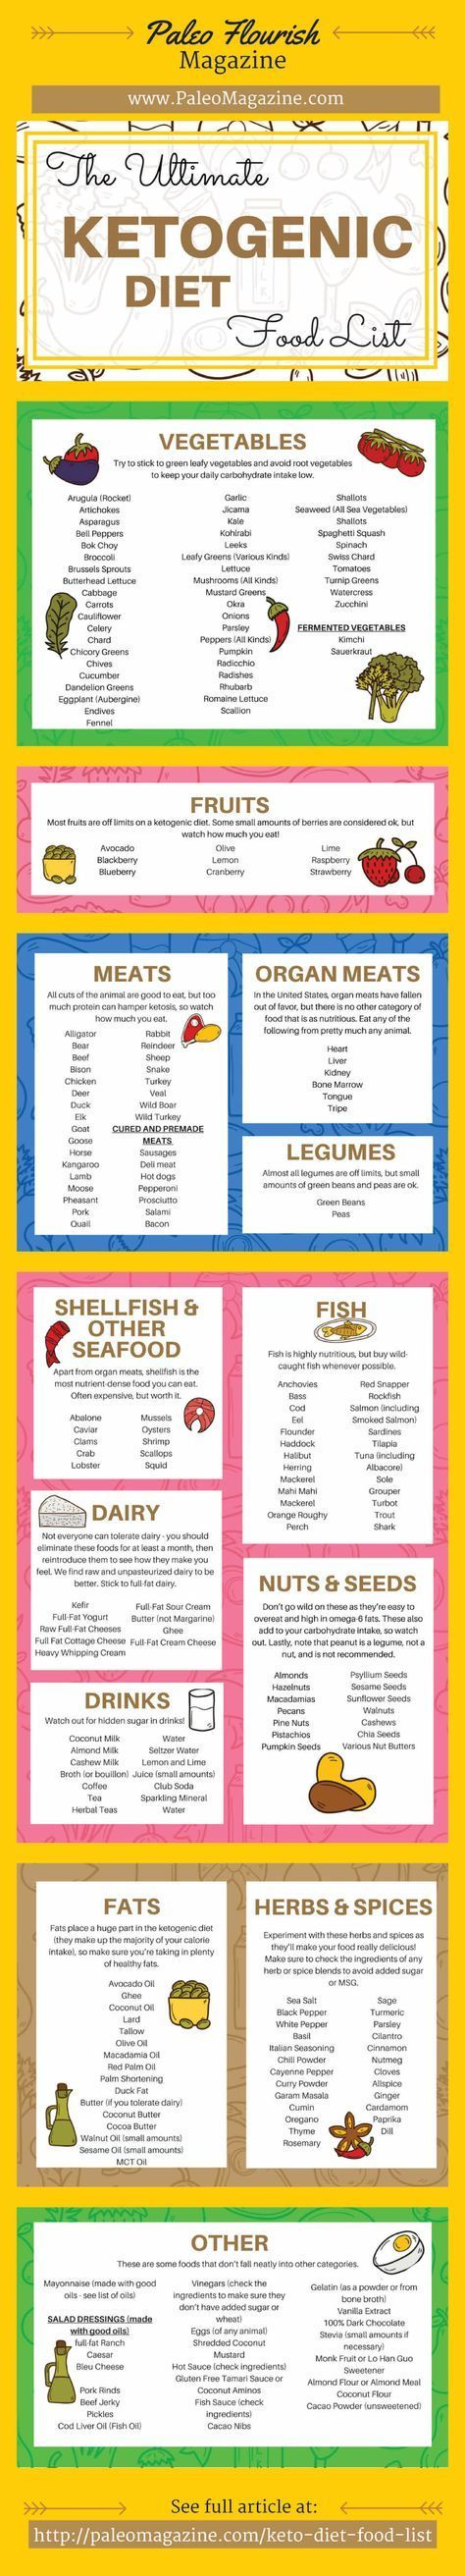 25+ best ideas about Ketogenic diet menu on Pinterest | Ketogenic diet plan, Ketosis diet plan ...